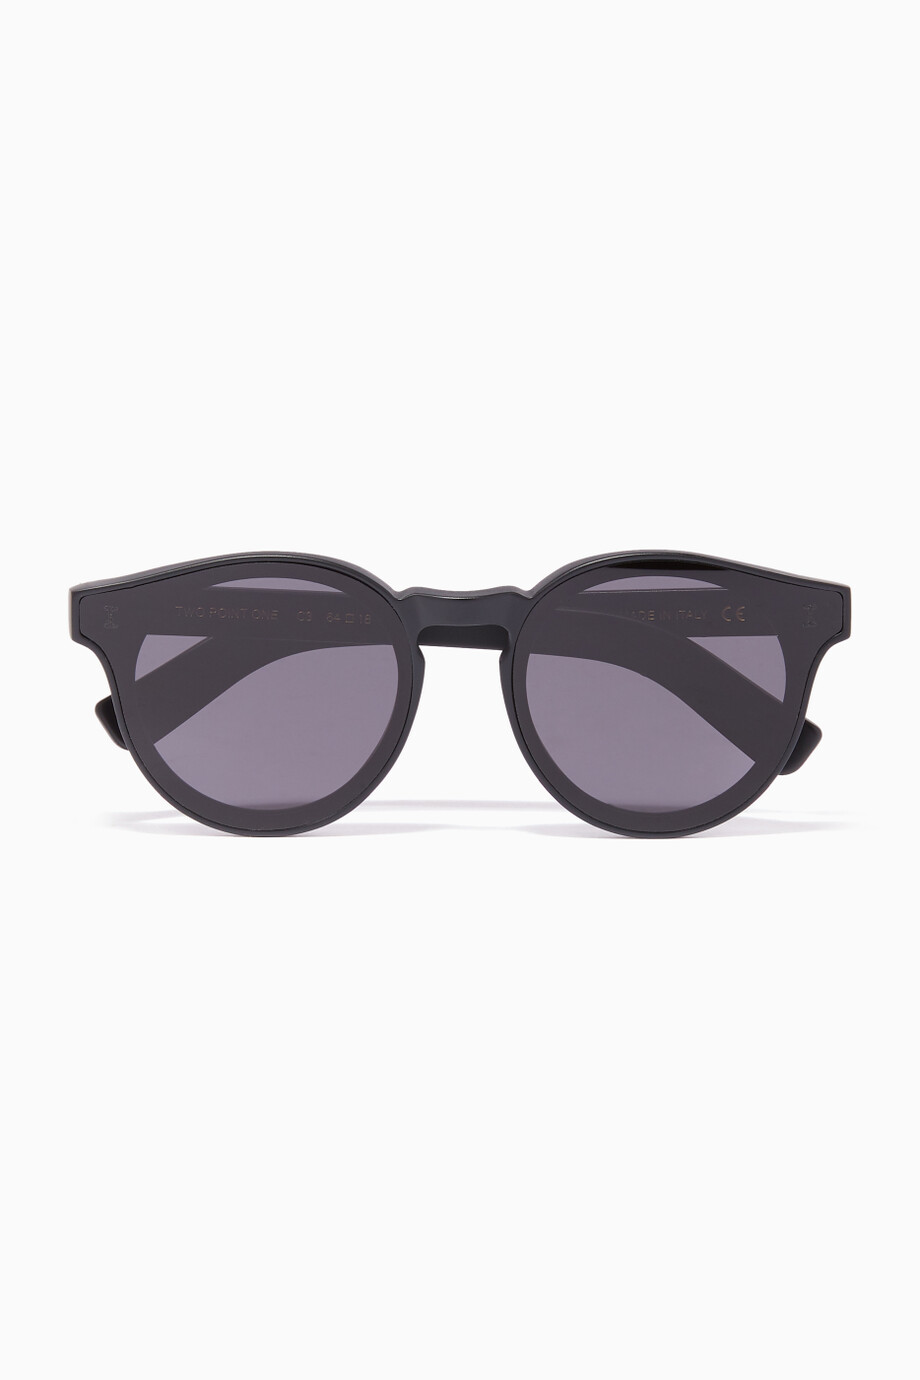 5a87d40aaf00 Shop Illesteva Black Black Two Point One Round-Frame Sunglasses for ...